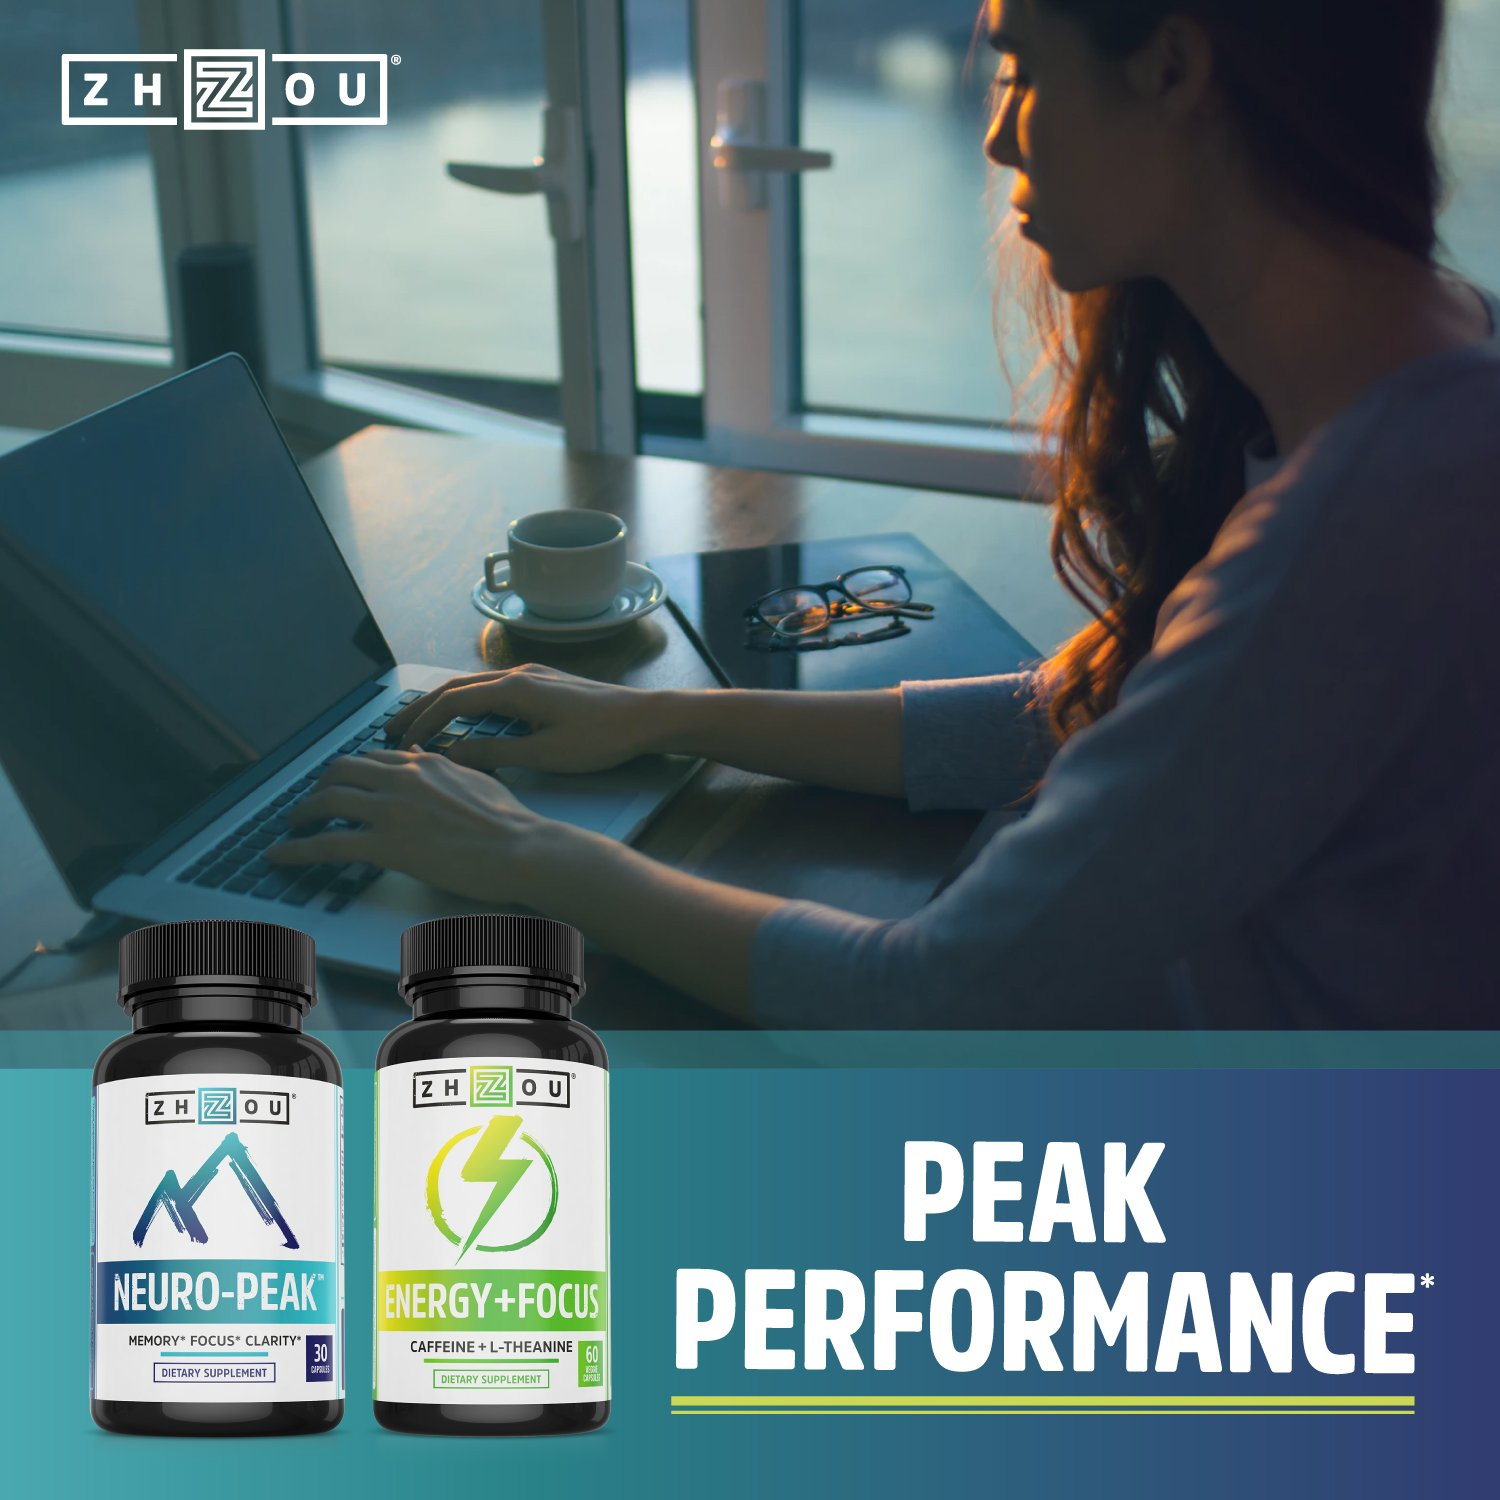 Neuro-Peak Brain Support Supplement, Nootropic Formulated for Memory, Focus, Clarity, 30 Capsules by Zhou Nutrition (Image #7)